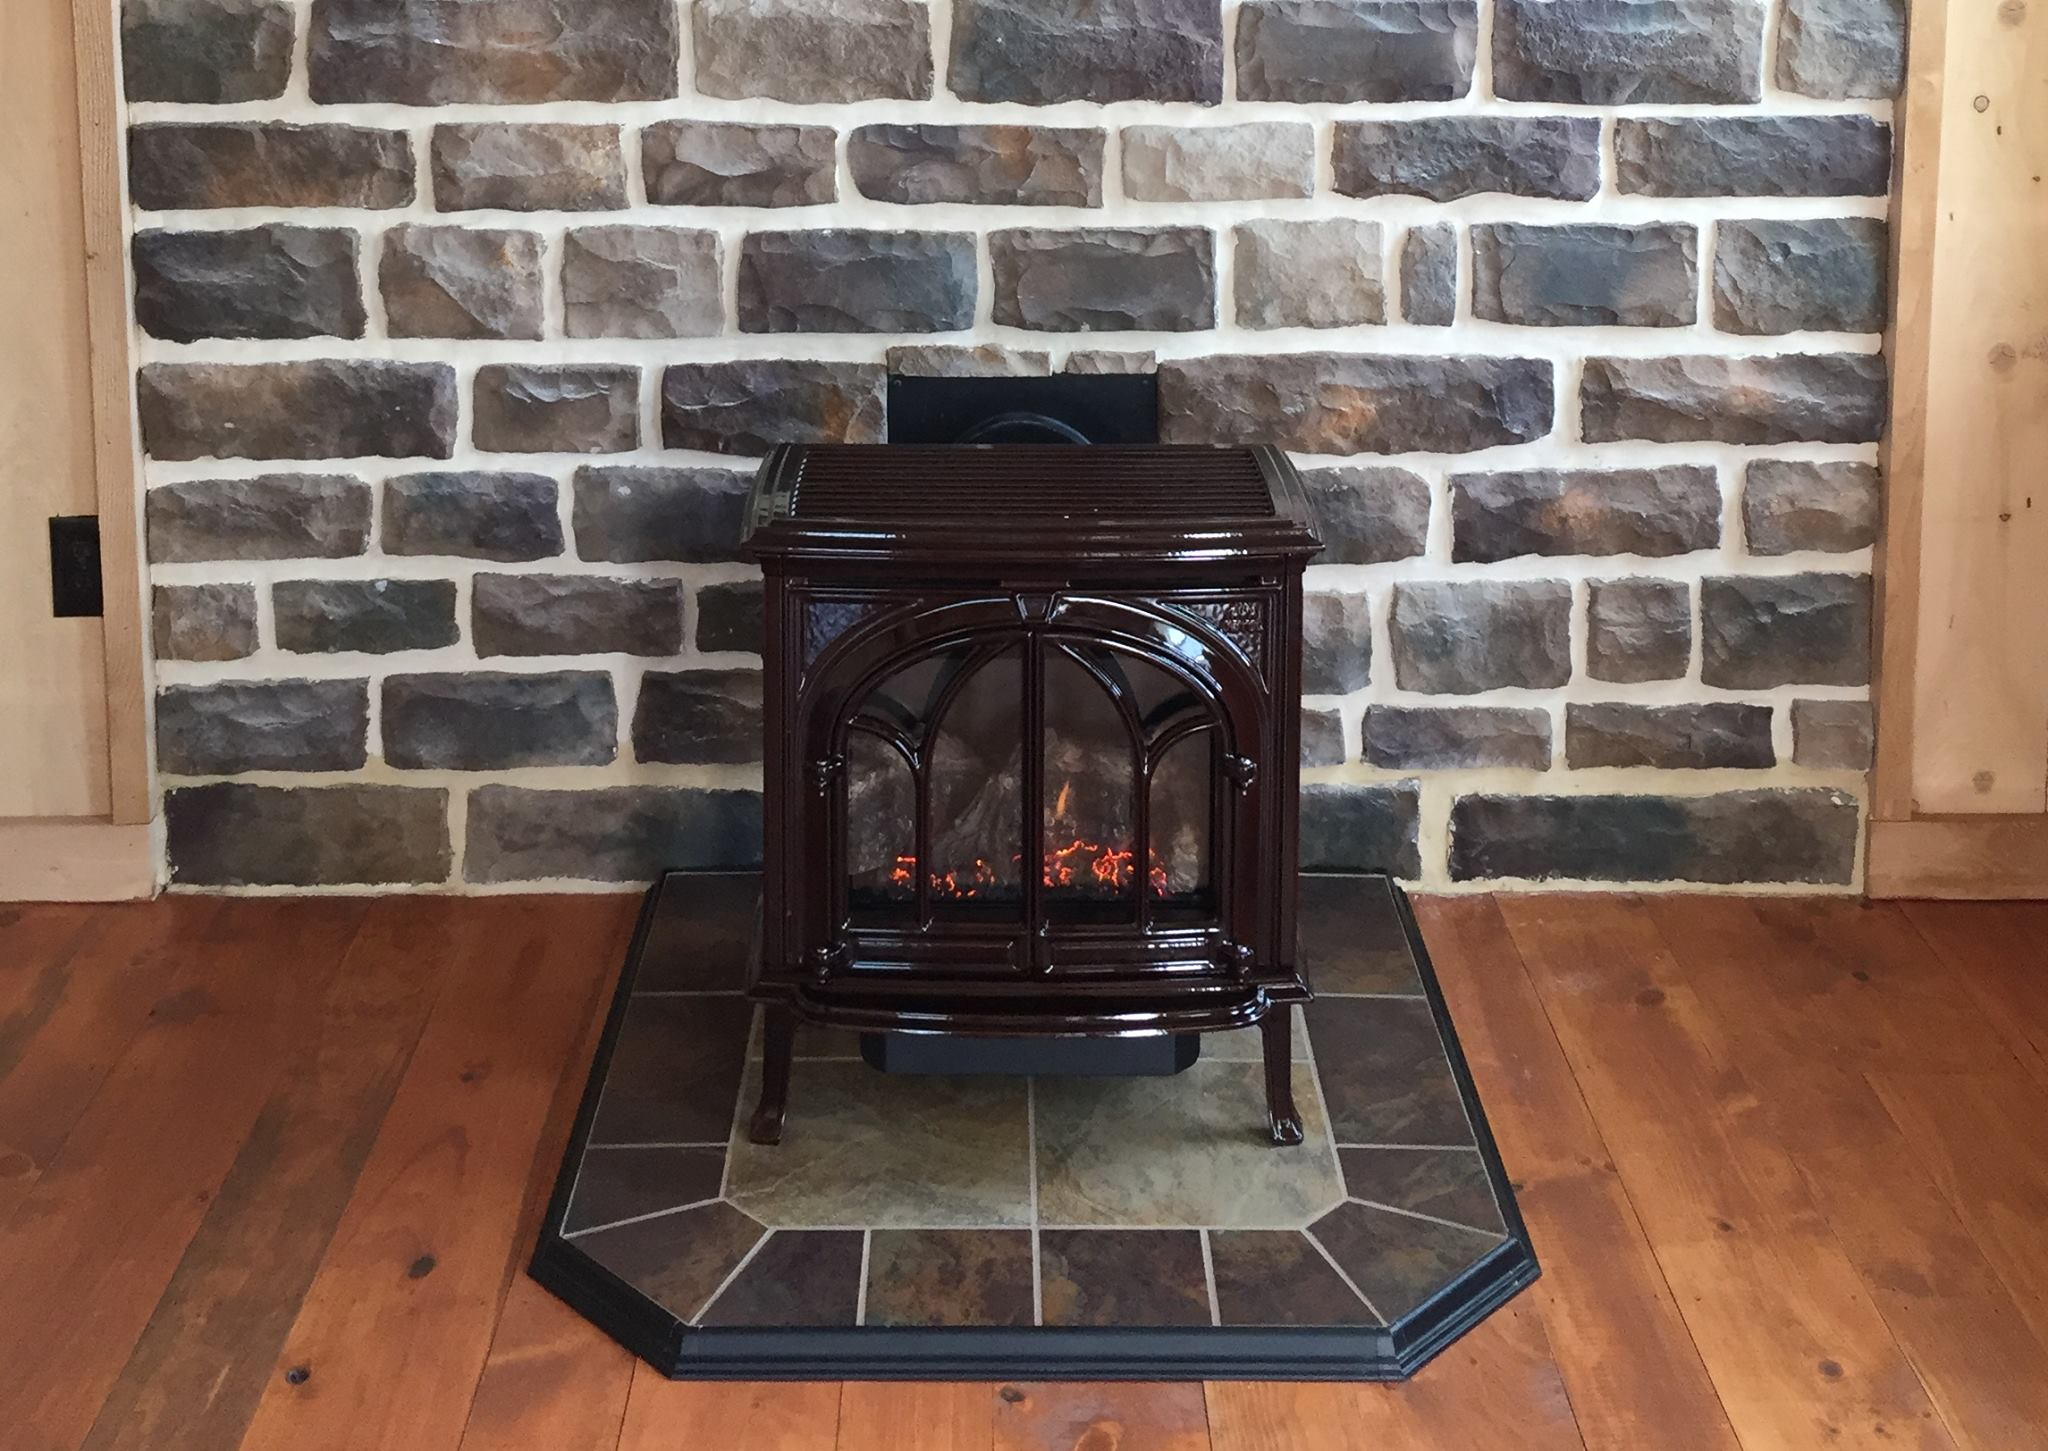 diamond winter the using design stunning great best and surround for faux during long inserts stone room living ideas fireplace installation interior keeps with gas insert warm